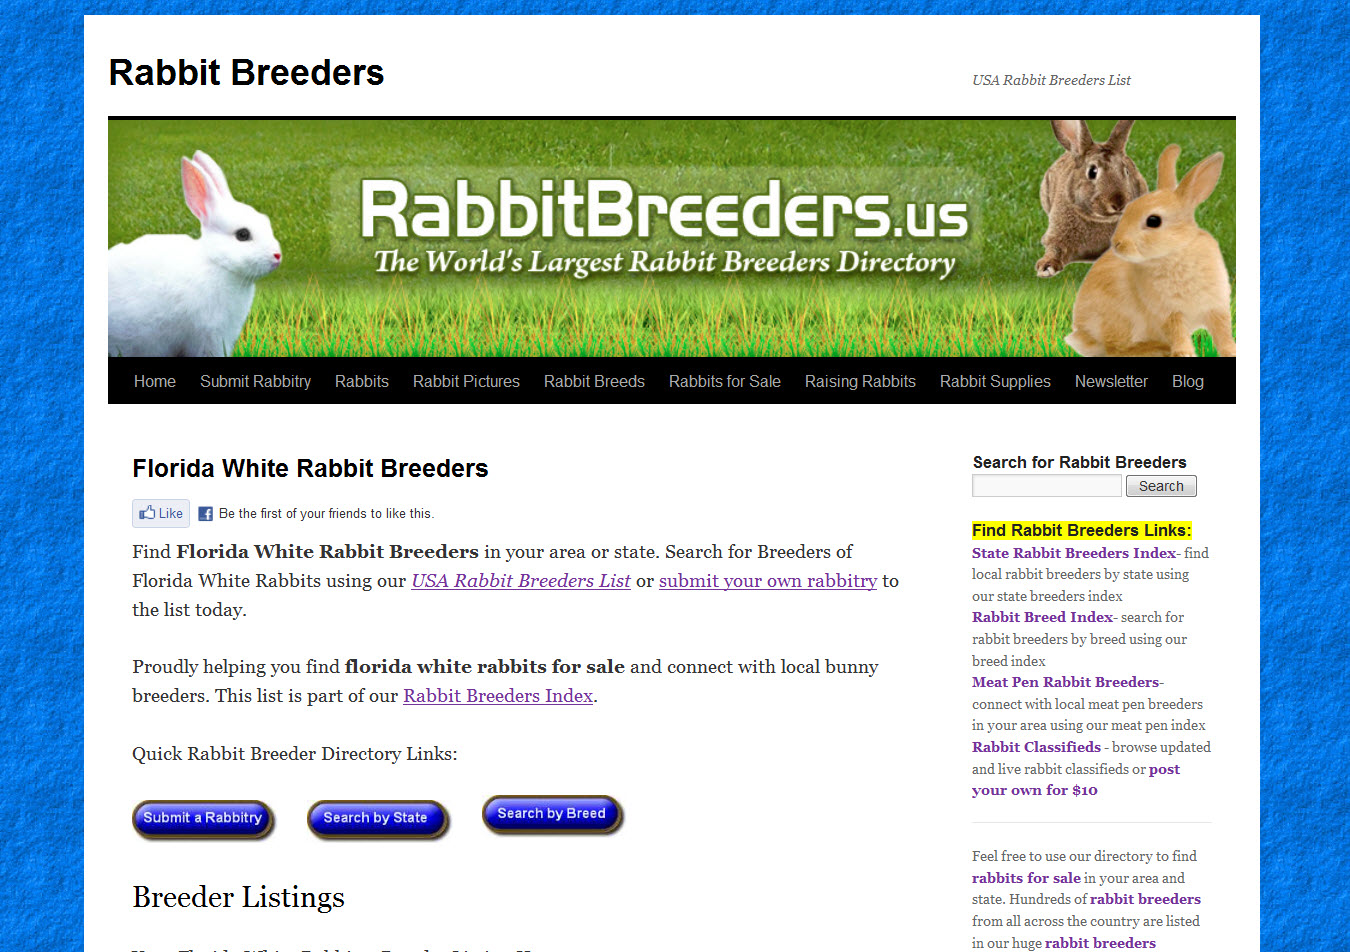 Florida White Rabbit Breeders